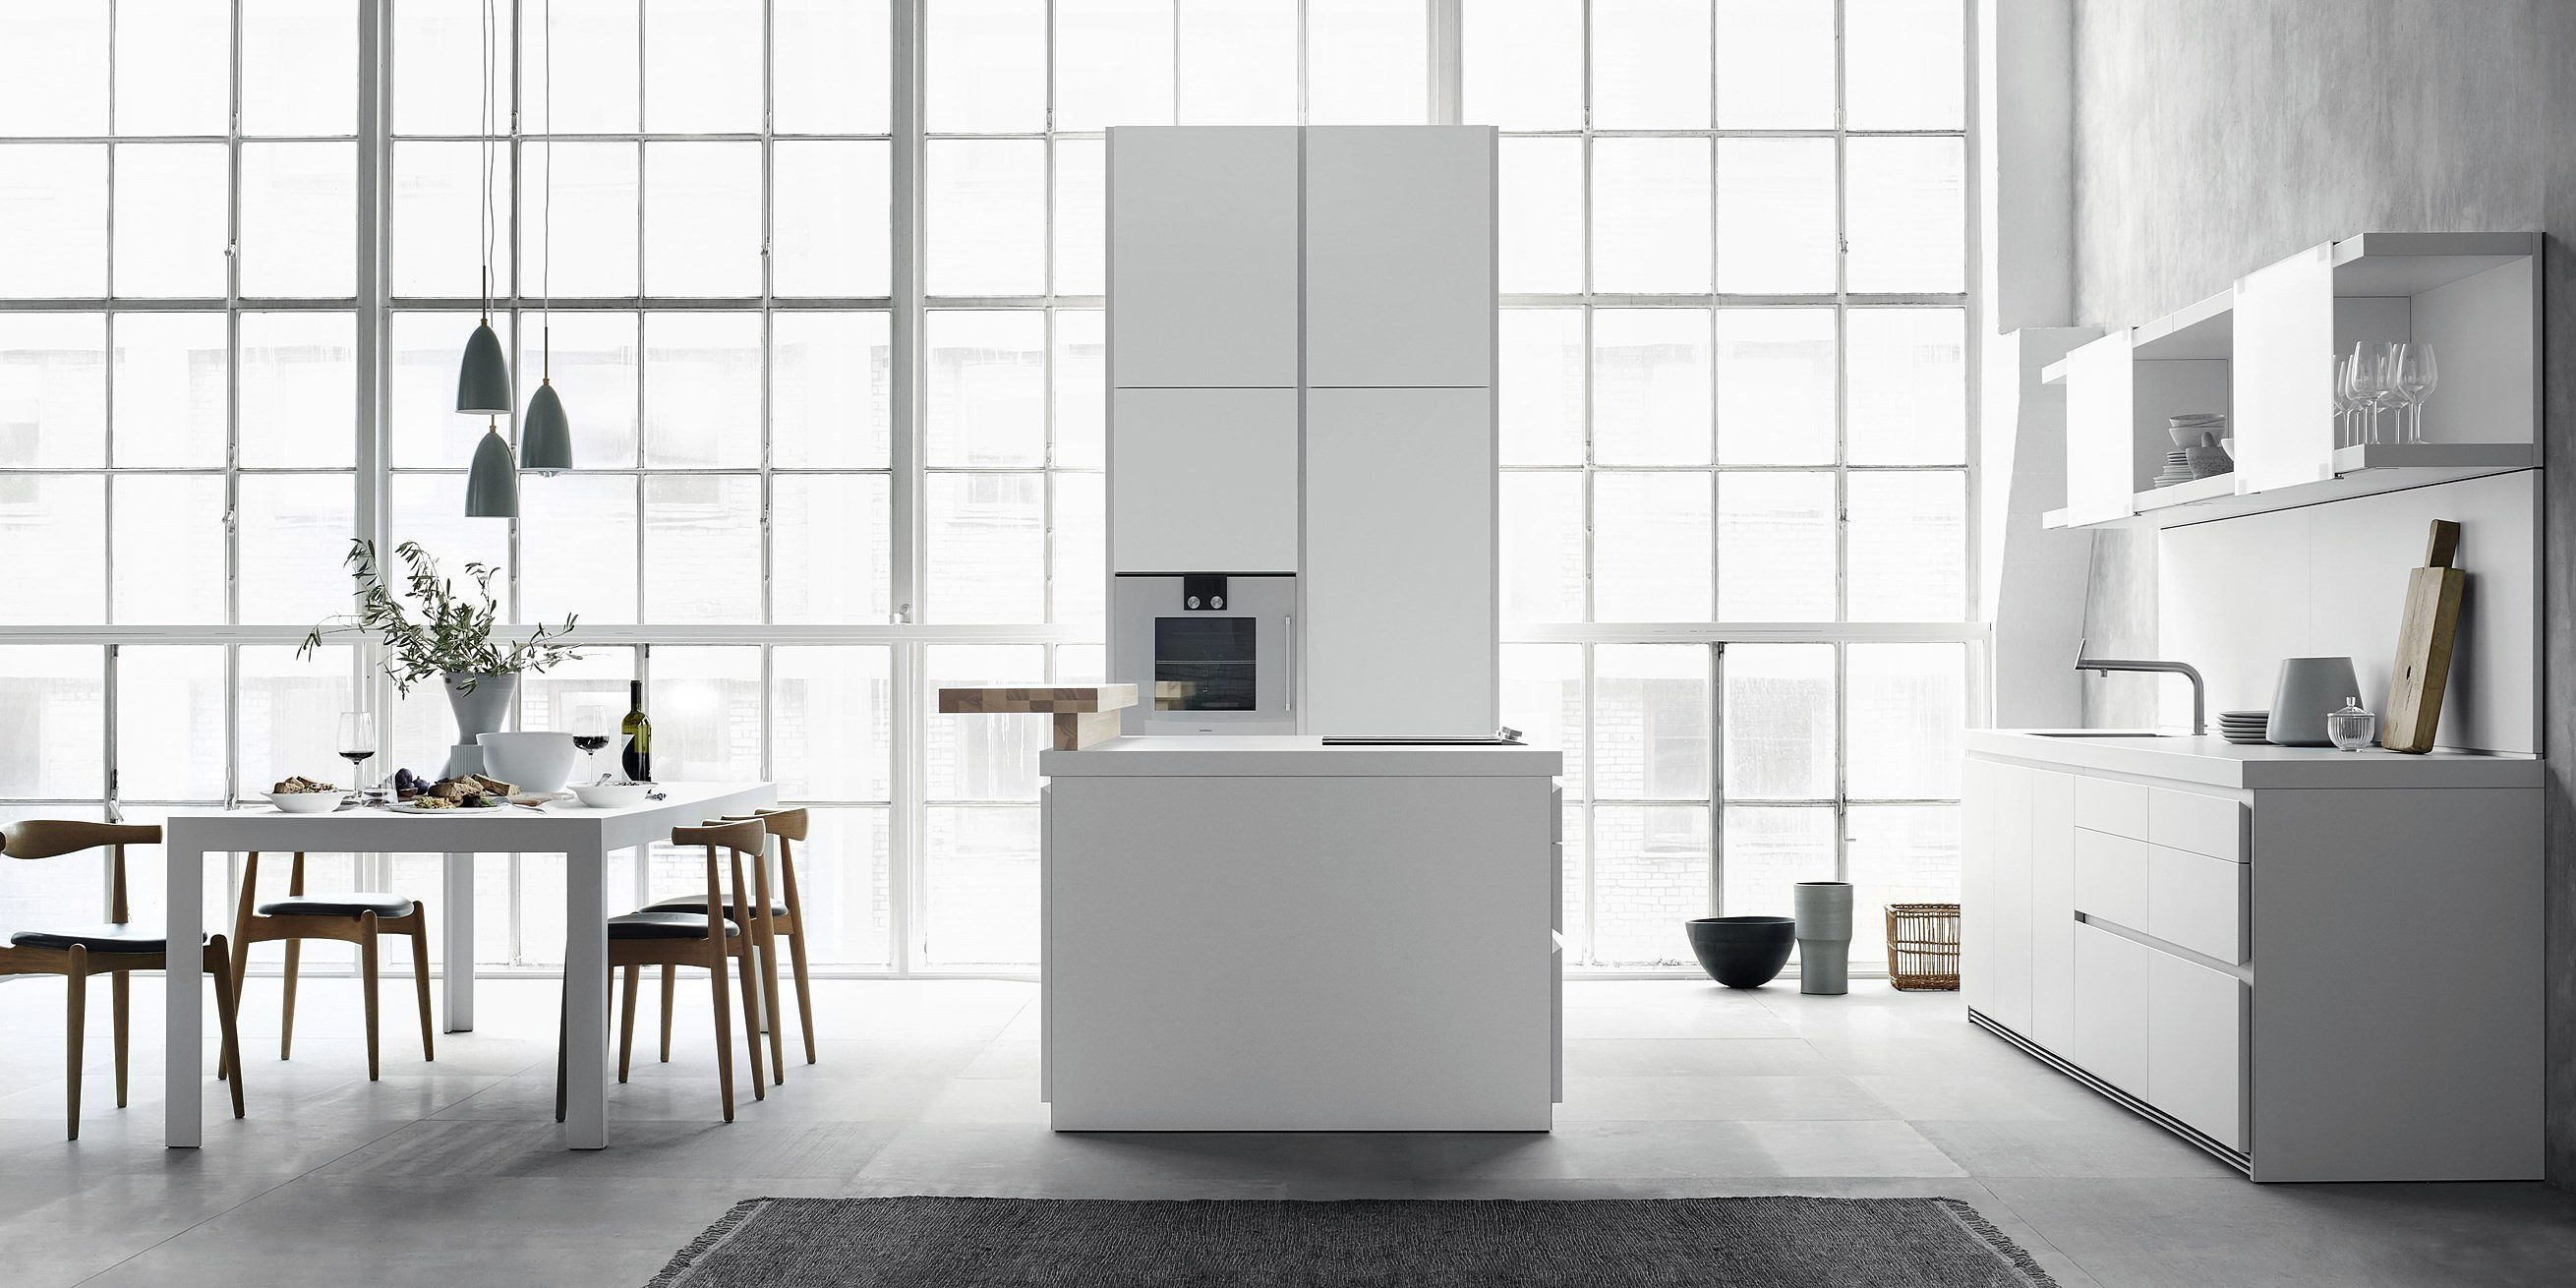 bulthaup b1 is made up of stand-alone elements: The kitchen island, the wall line, and the tall unit block. The design is puristic and ergonomic, allowing you to focus on what really matters.